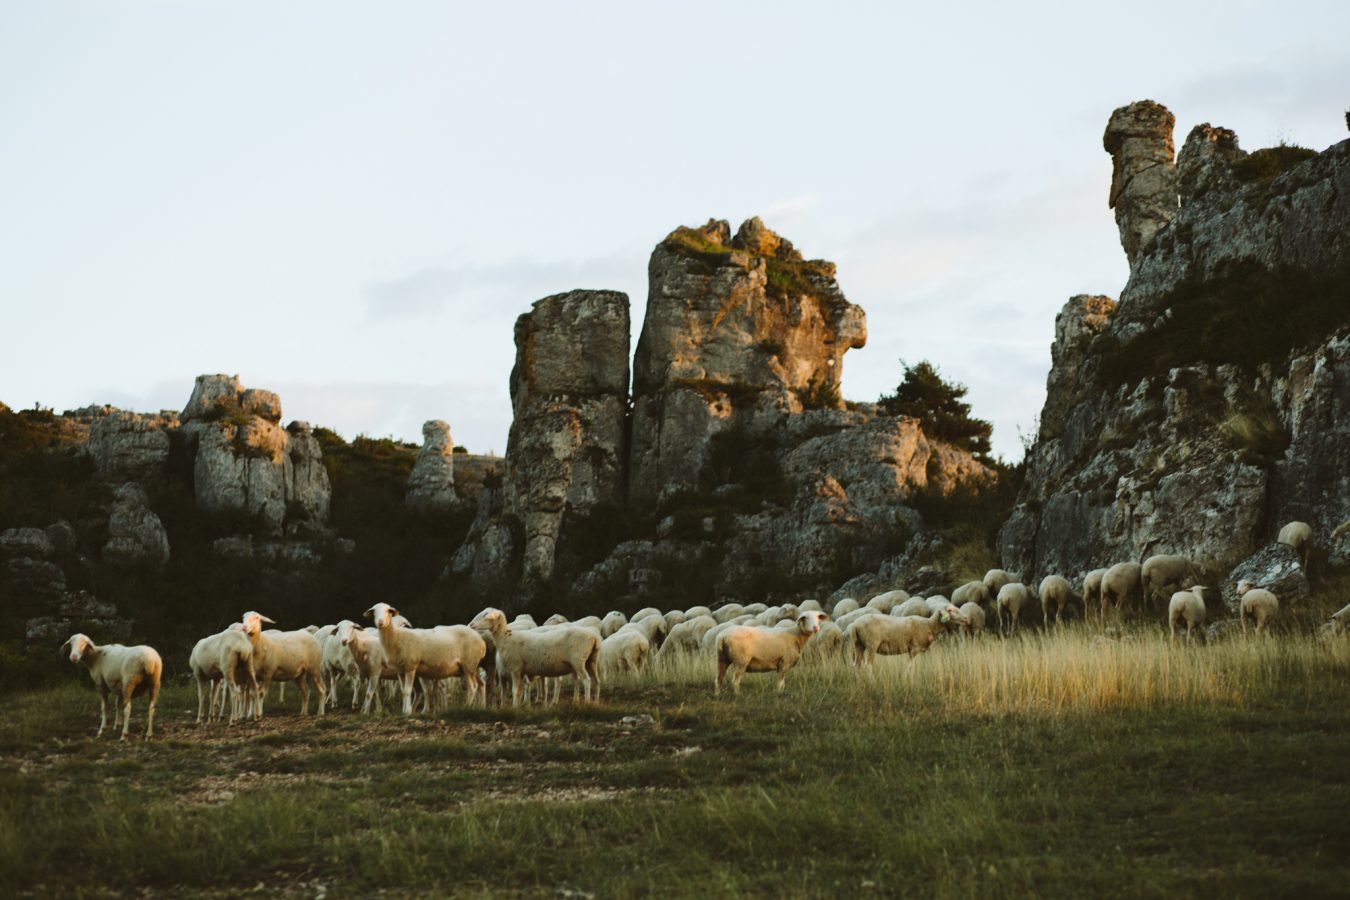 Sheep larzac culture landscape